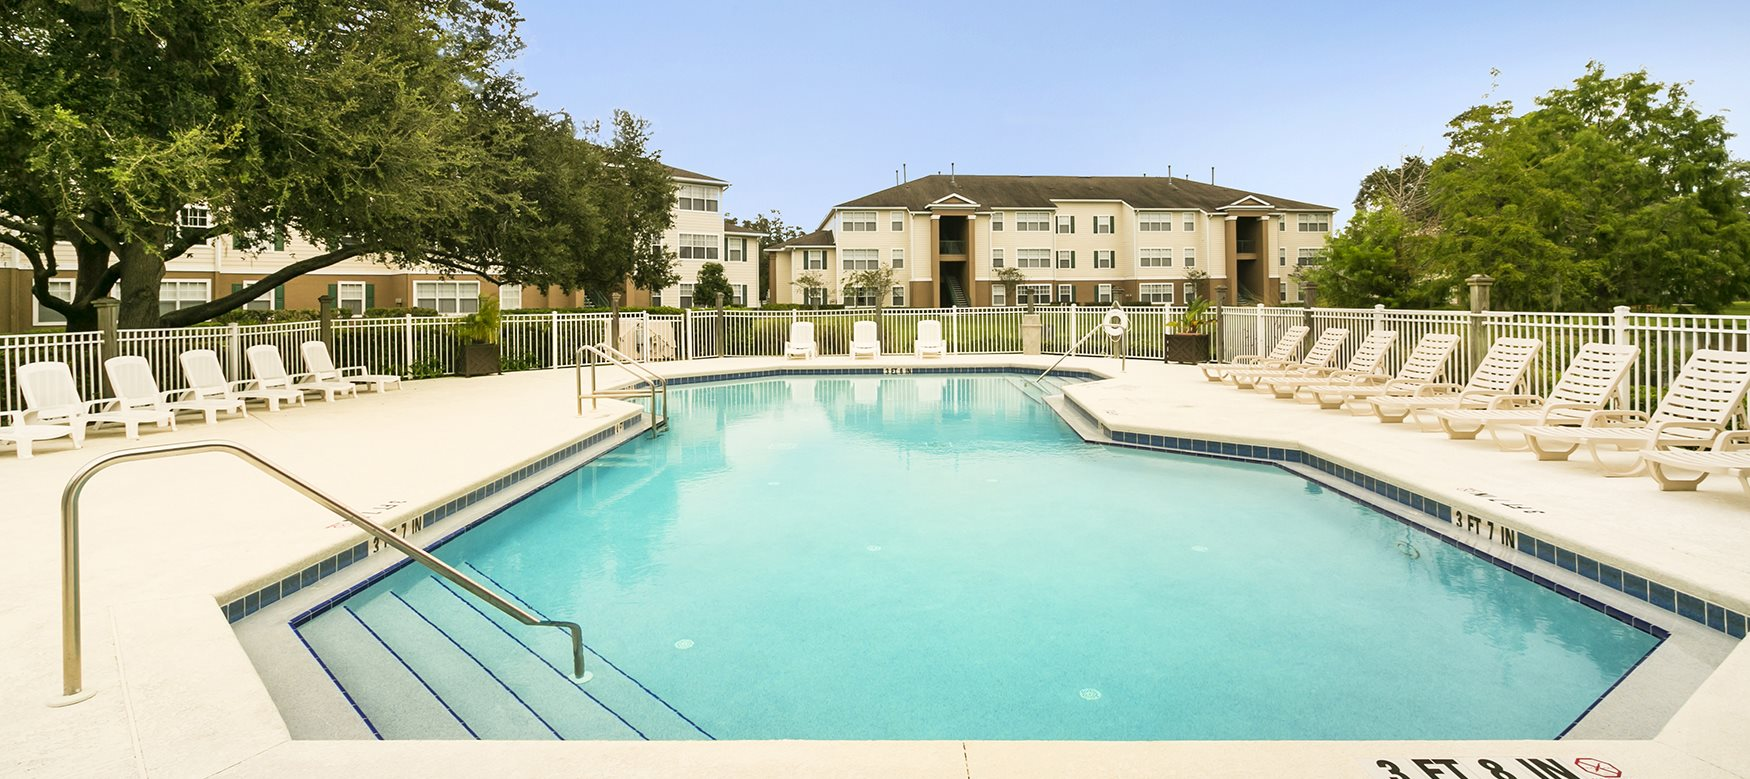 University Club Apartments for rent in Sarasota, FL. Make this community your new home or visit other ConcordRENTS communities at ConcordRENTS.com. Resort-style pool